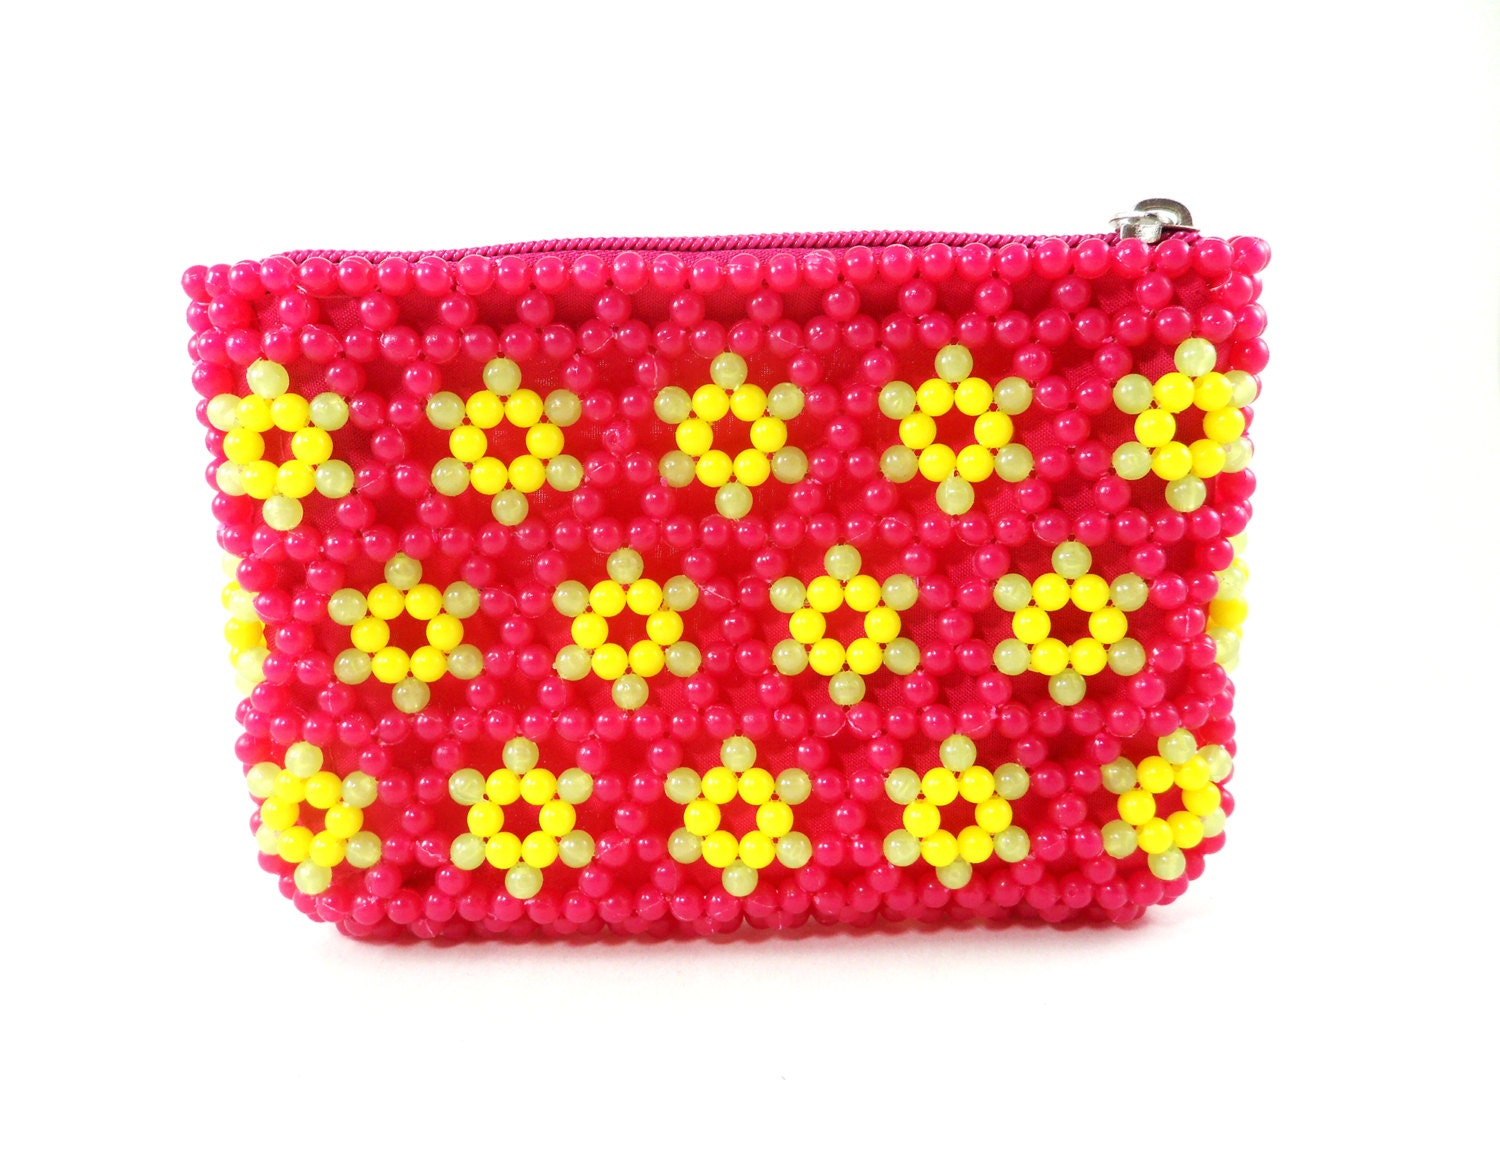 Beaded Wallet Beaded Coin Purse Floral Beaded Mini Clutch